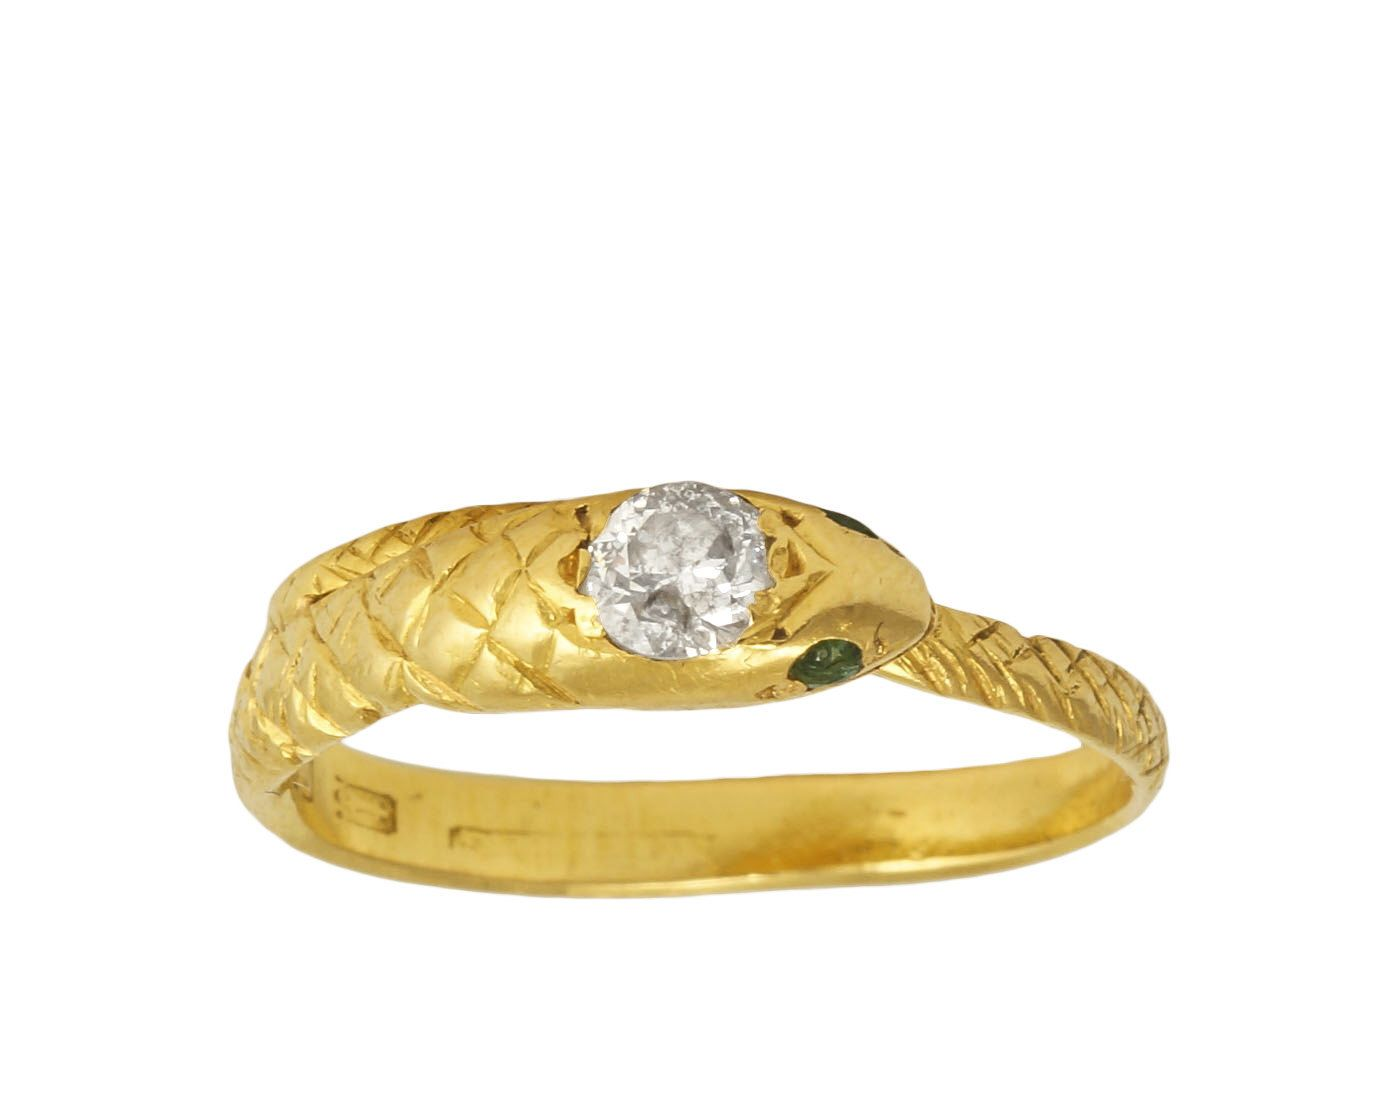 Antique Georgian Diamond & Emerald Snake Ring in 22ct Gold, c1834 by ButterLaneAntiques on Etsy https://www.etsy.com/listing/281042120/antique-georgian-diamond-emerald-snake